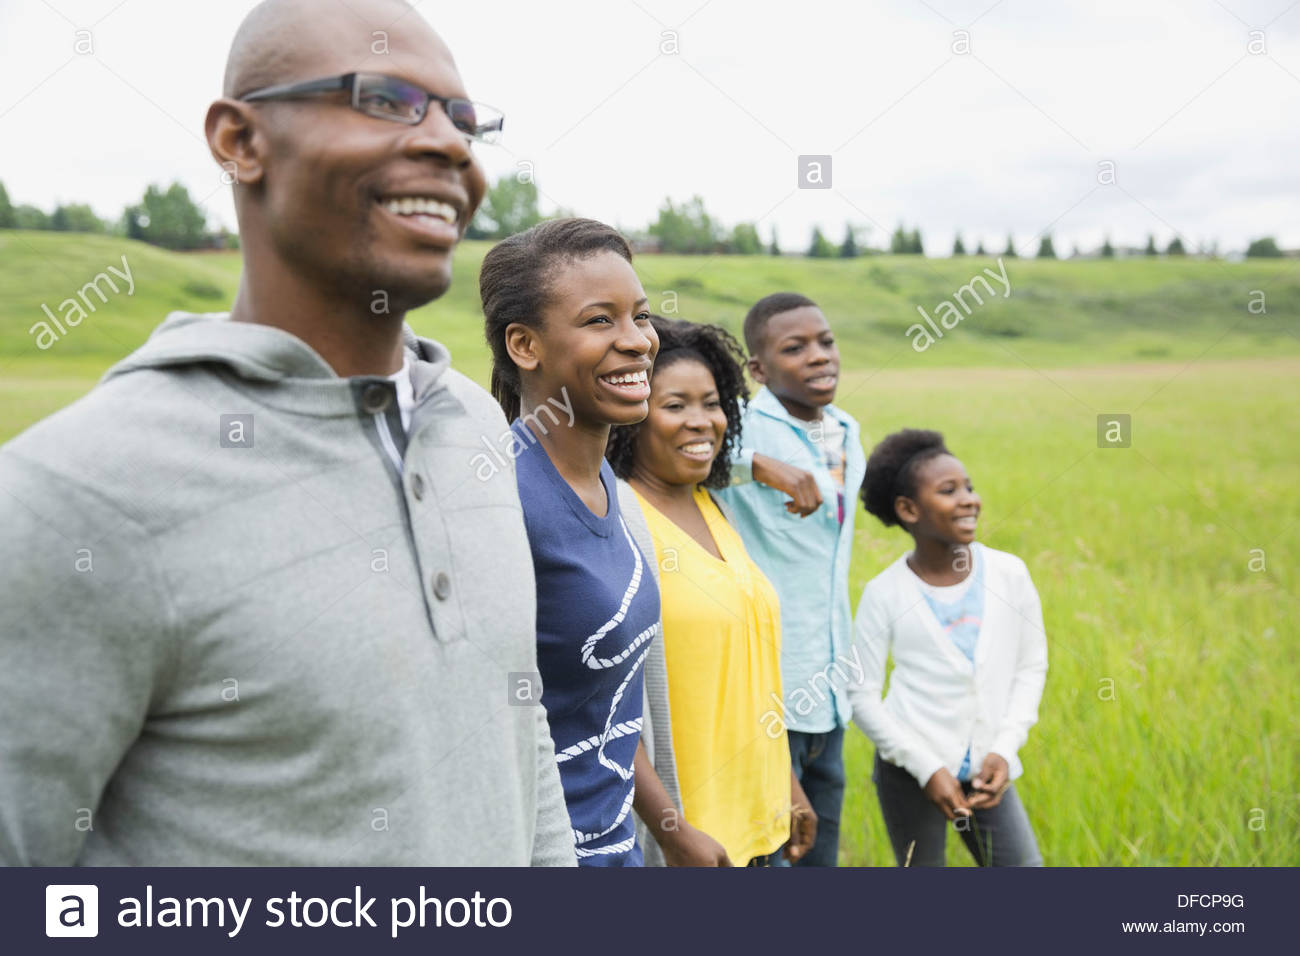 Family of five standing together in field - Stock Image